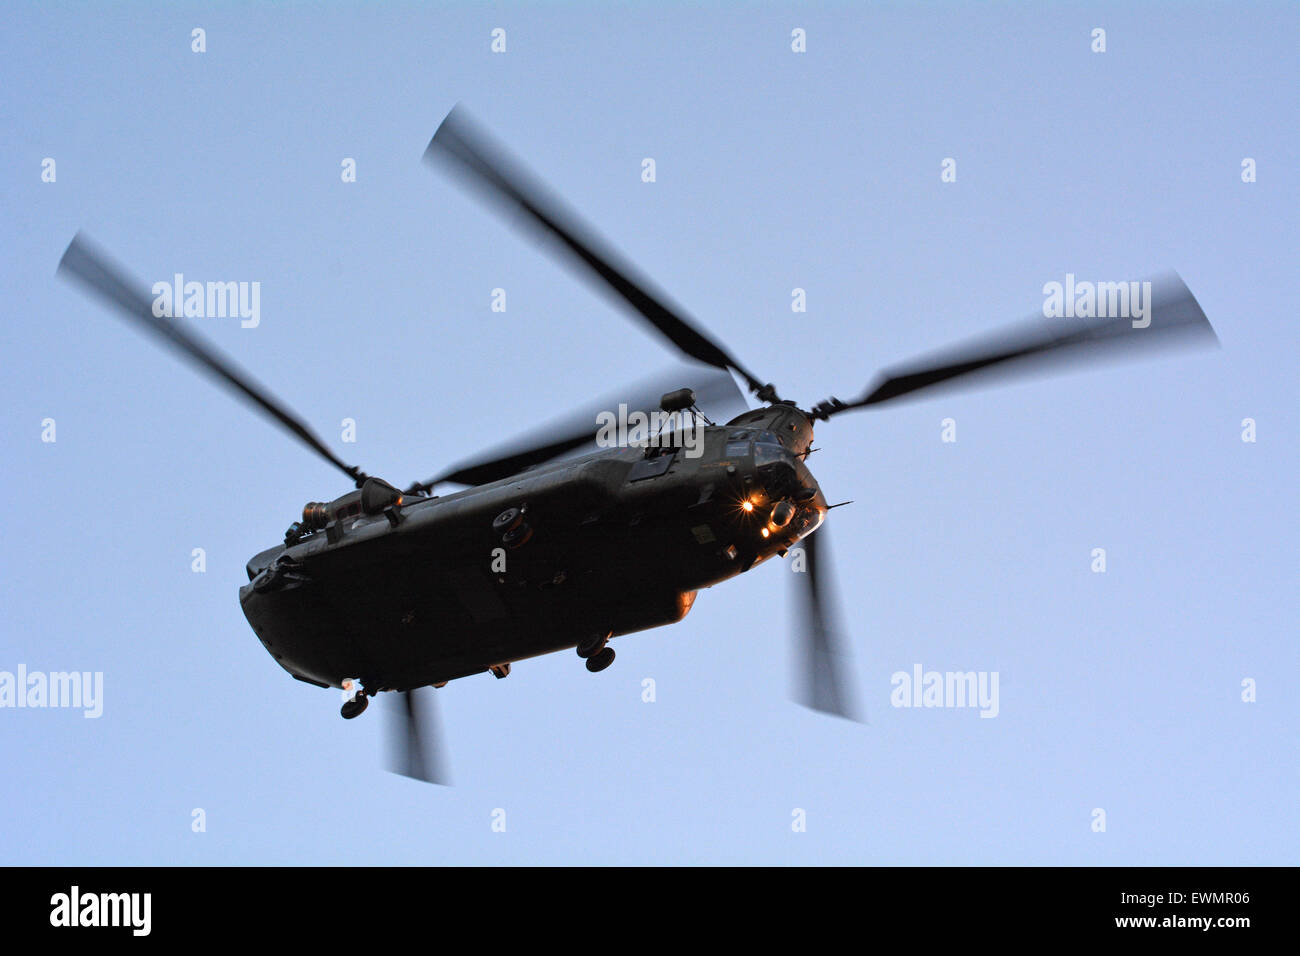 LONDON - MAY 14 2015:RAF Chinook HC4 in airshow over London, UK.The American tandem rotor heavy-lift helicopter - Stock Image